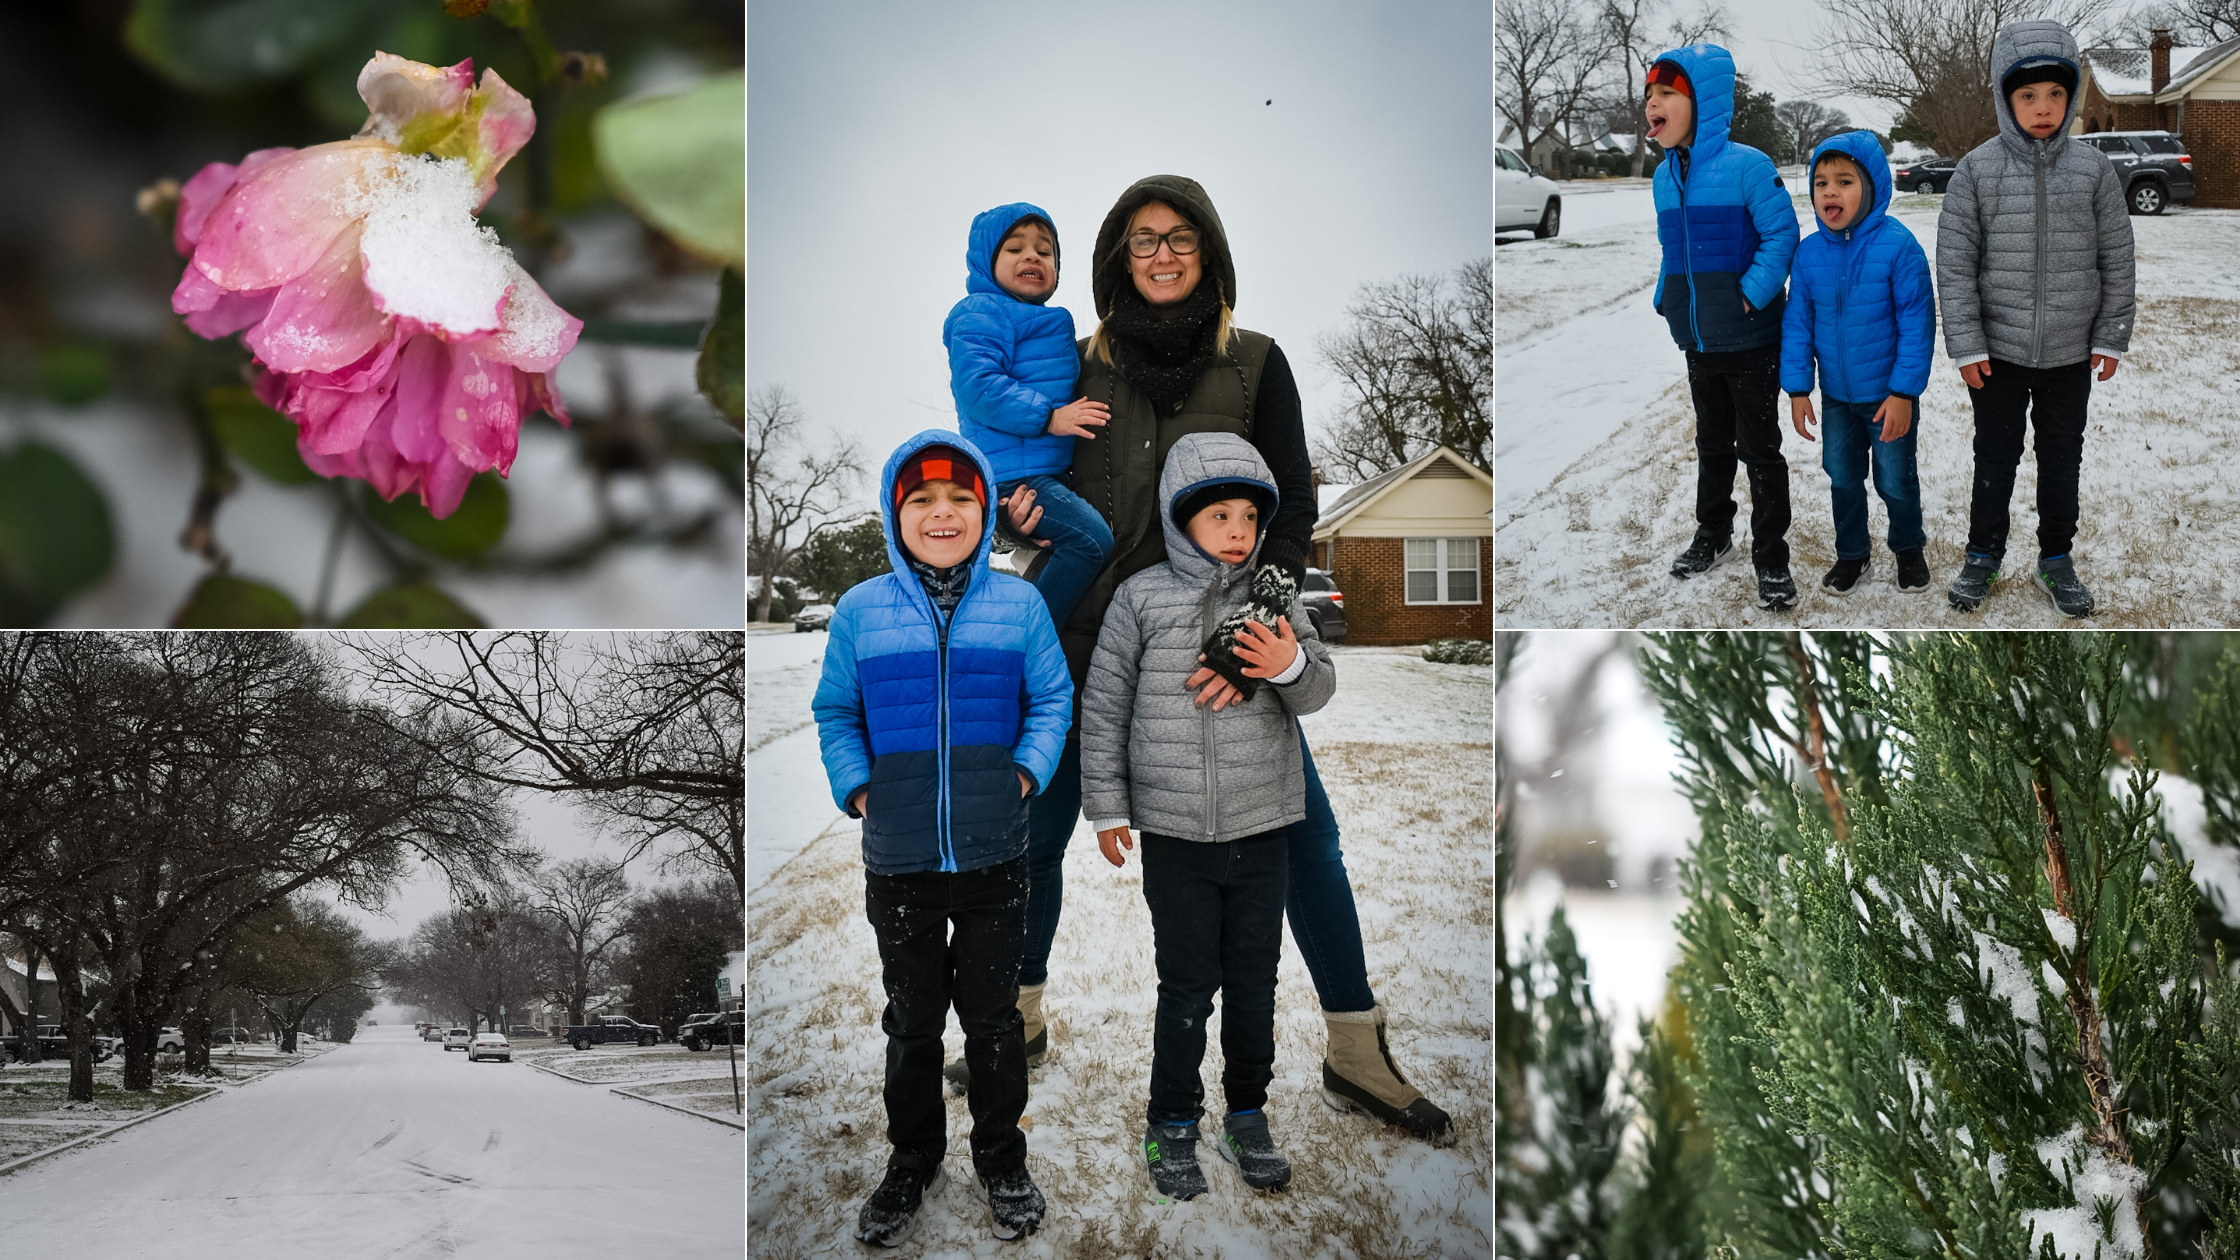 Photos of the Texas ice storm in 2021 including a frozen rose, frozen juniper shrub, a street covered in snow, and a mom and three boys in the snow